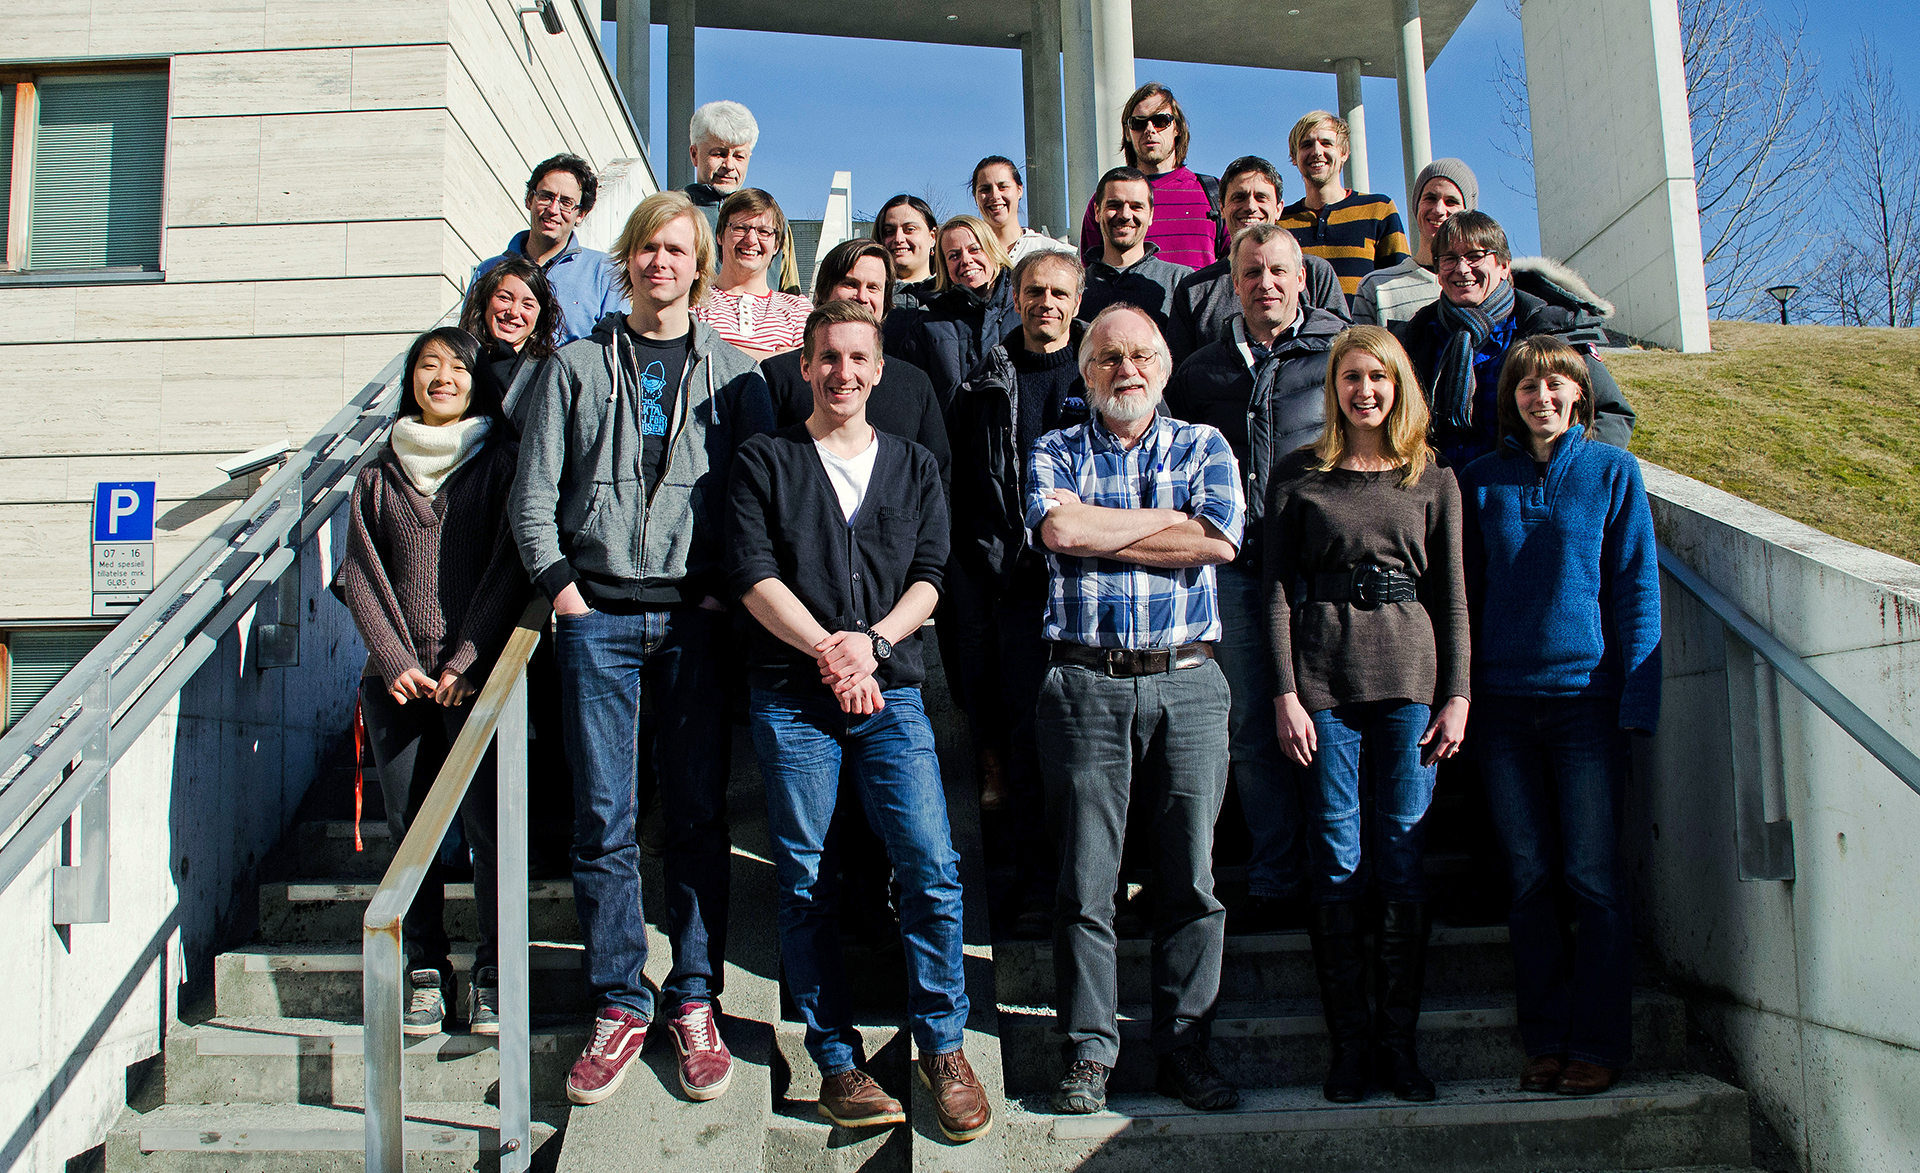 Participants in the kittiwake workshop; Front row from left: Solveig Nilsen, Vegard Bråthen, Dagfinn Skomsø, Claus Bech, Bethany Nelson and Gail Robertson. Second row from left: Sabrina Tartu, Børge Moe, Olivier Chastel, Jan Ove Bustnes, Geir Wing Gabrielsen. Third row from left: Frédéric Angelier, Martin Kristiansen, Elin Noreen, Sébastien Deschamps, Jorg Welcker and Oddvar Heggøy. Back row from left: Sasha Kitaysky, Rebecca Young, Alexis Will, Simone Vincenzi and Jannik Schultner.